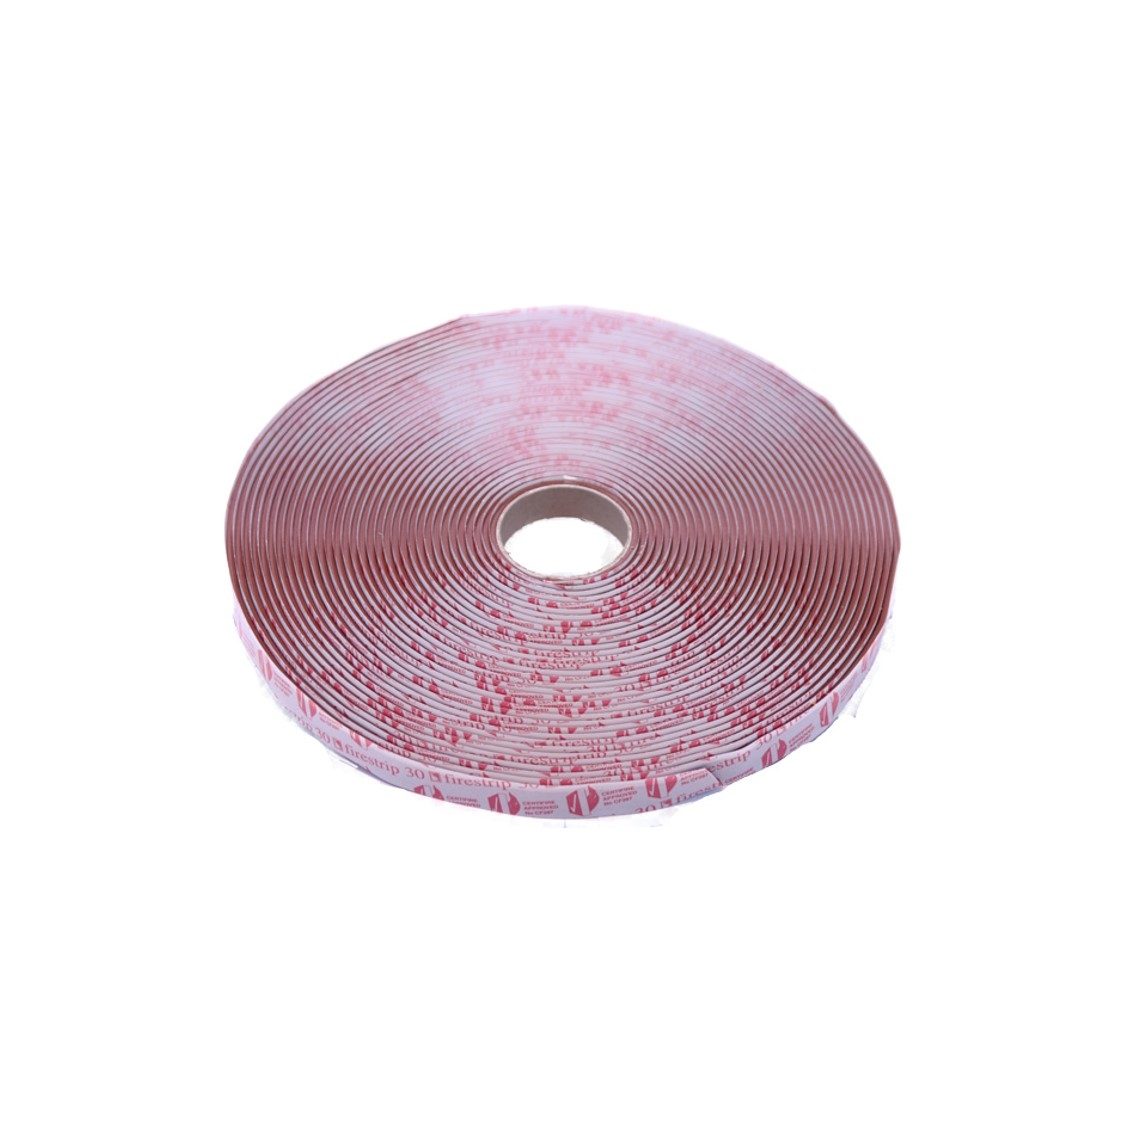 Flexistrip Firestrip 30 12x3mm Mahog Glazing Strip (15m Reel)